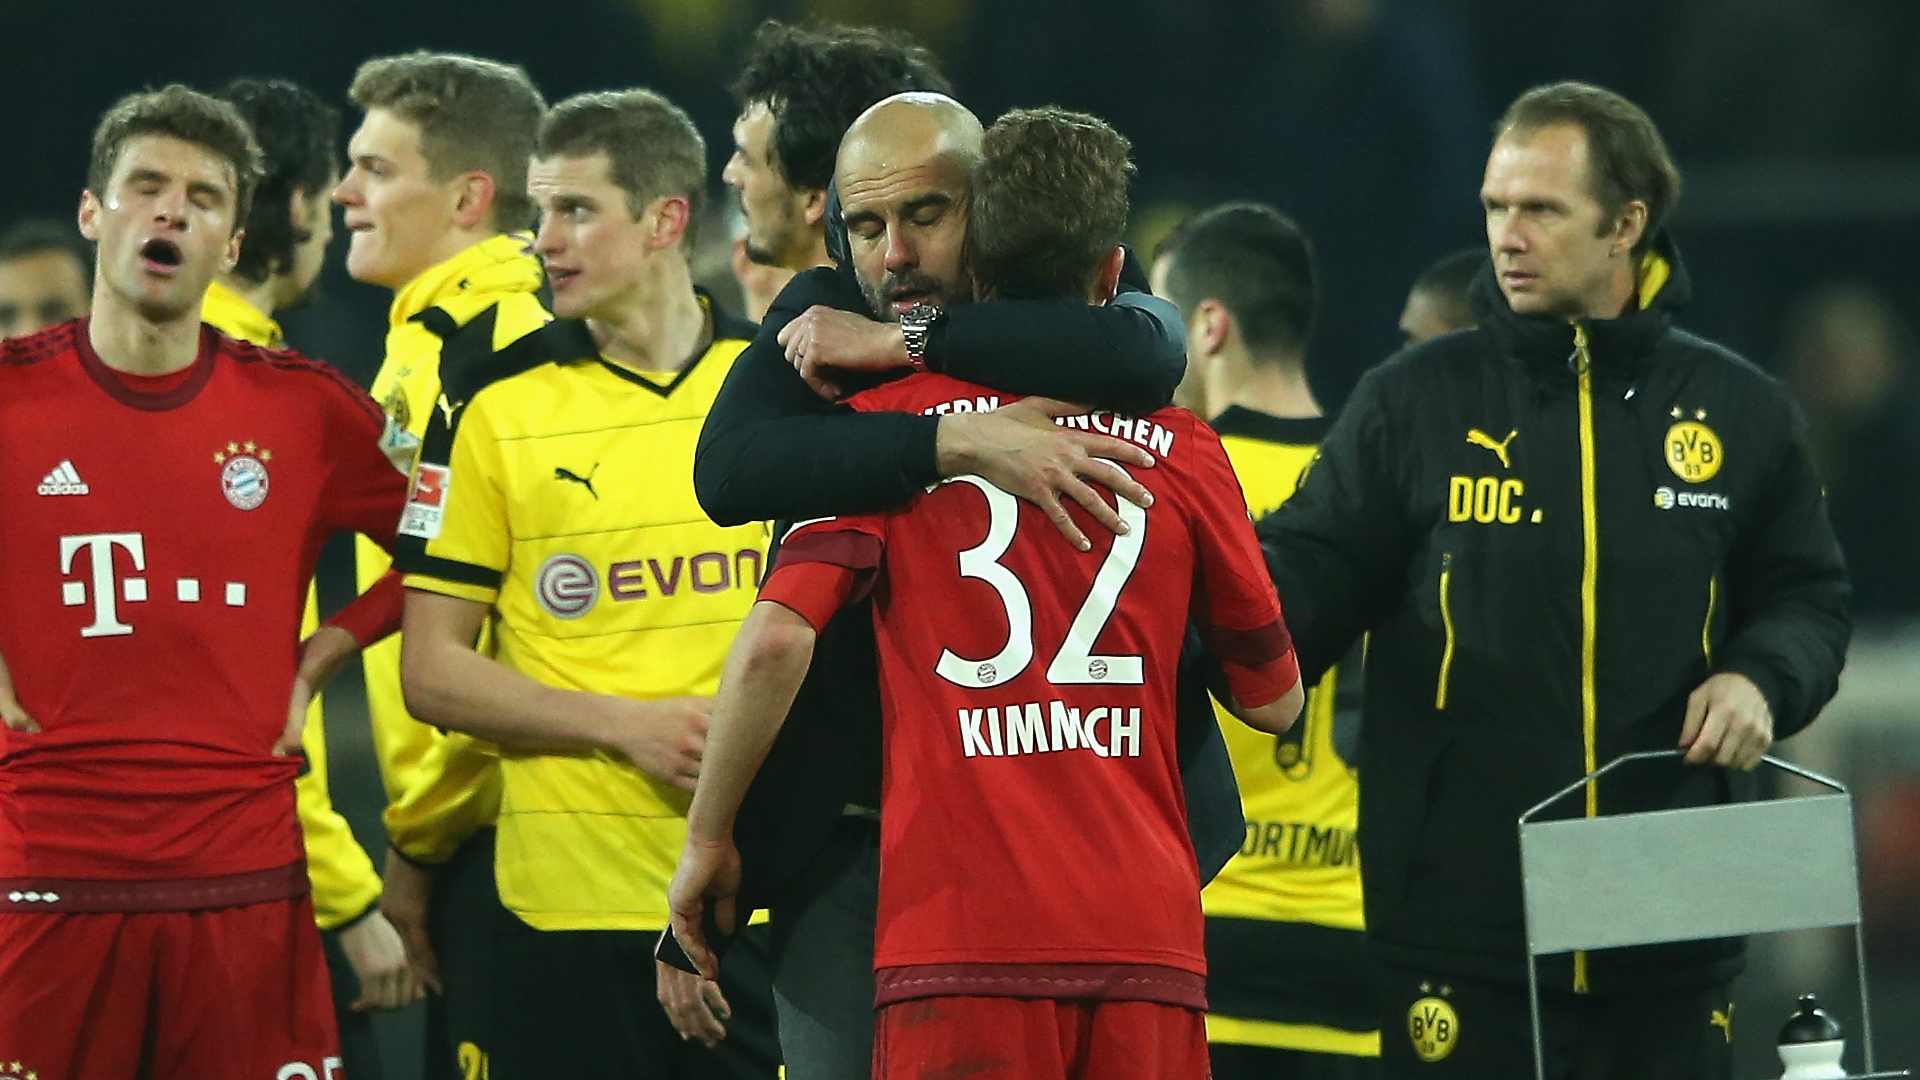 Kimmich flourished under the mentorship of Pep Guardiola (Photo: Goal)